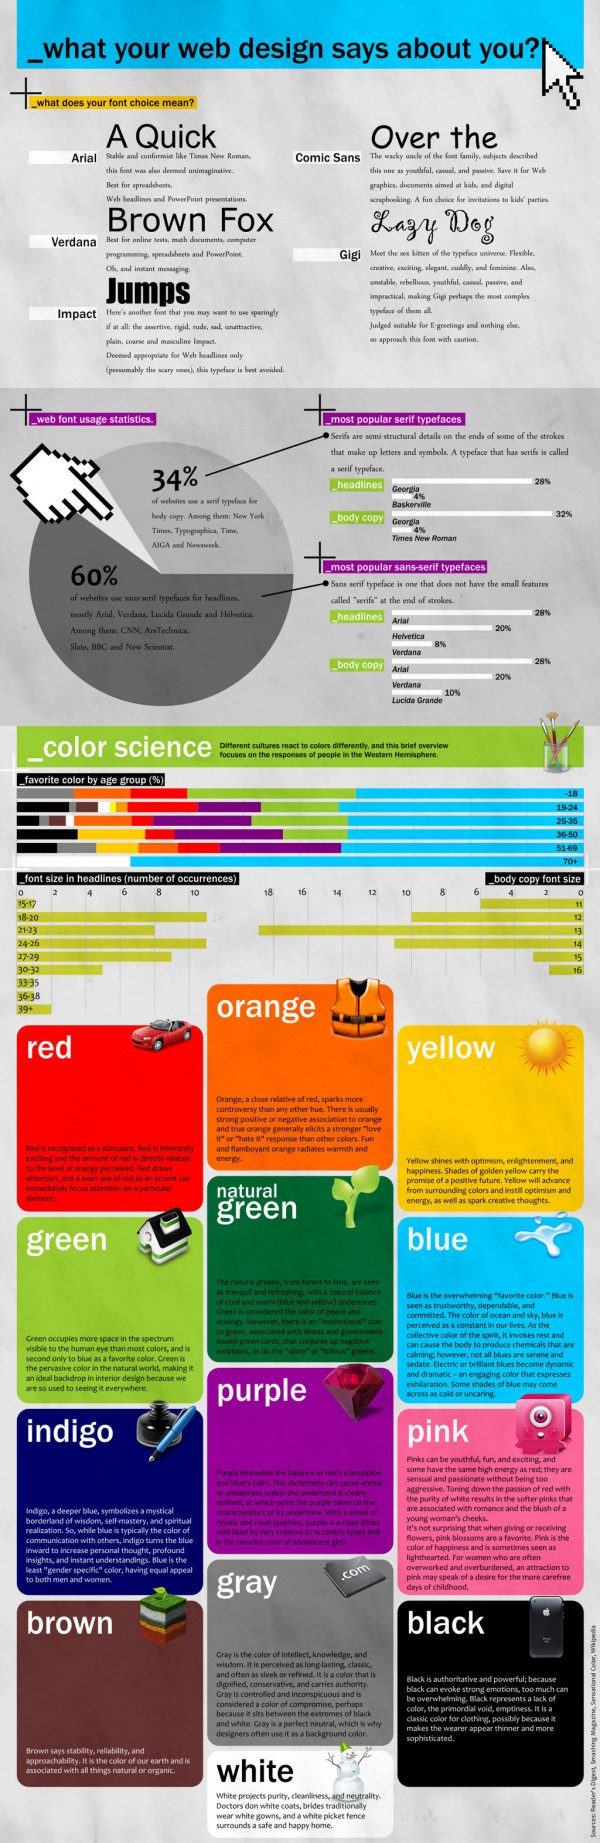 10-infographics-for-graphic-designers-05